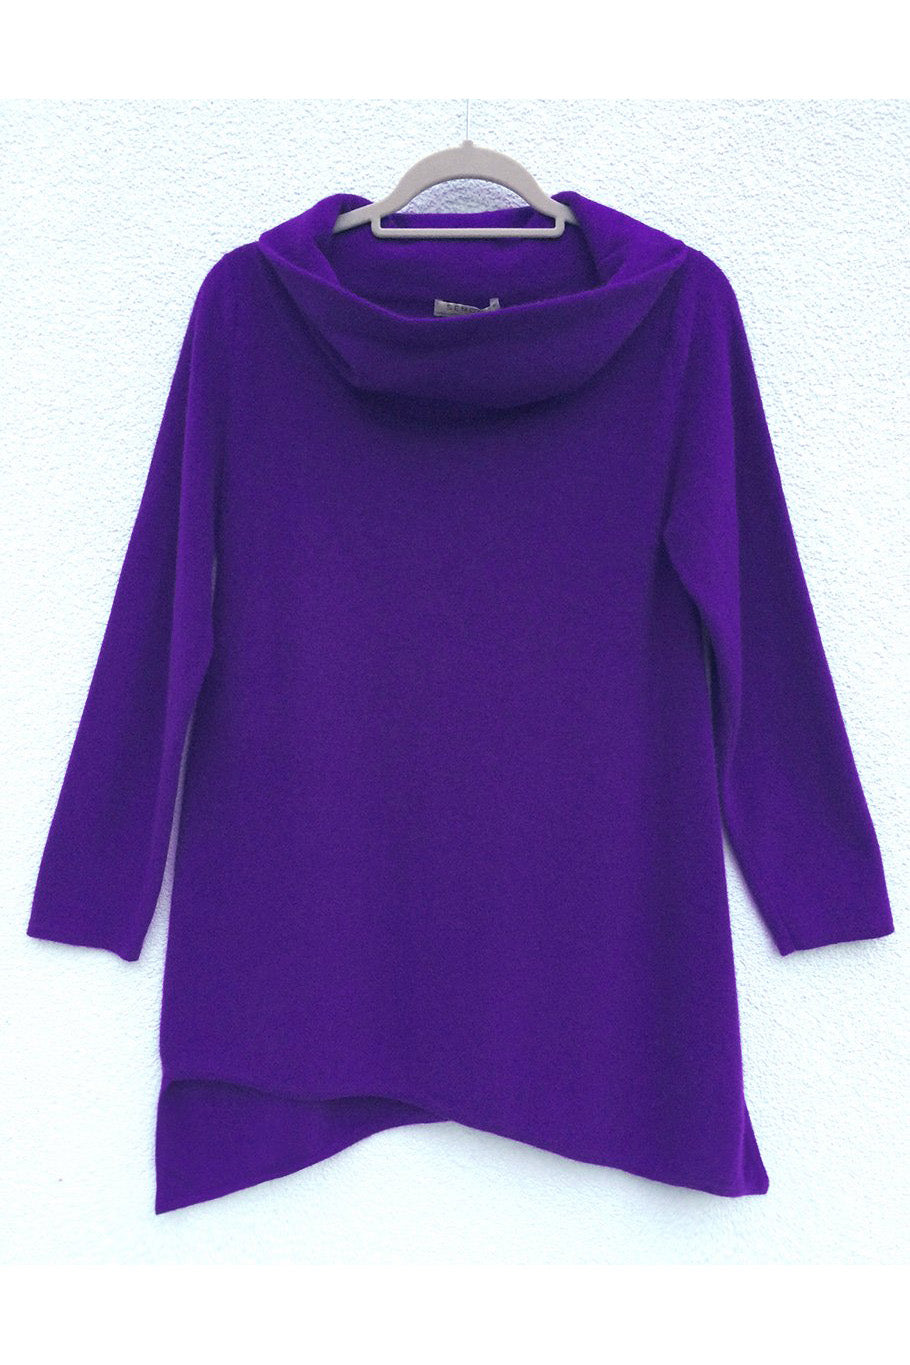 Triangle bottom Cashmere Tunic in Violet purple | SEMON Cashmere